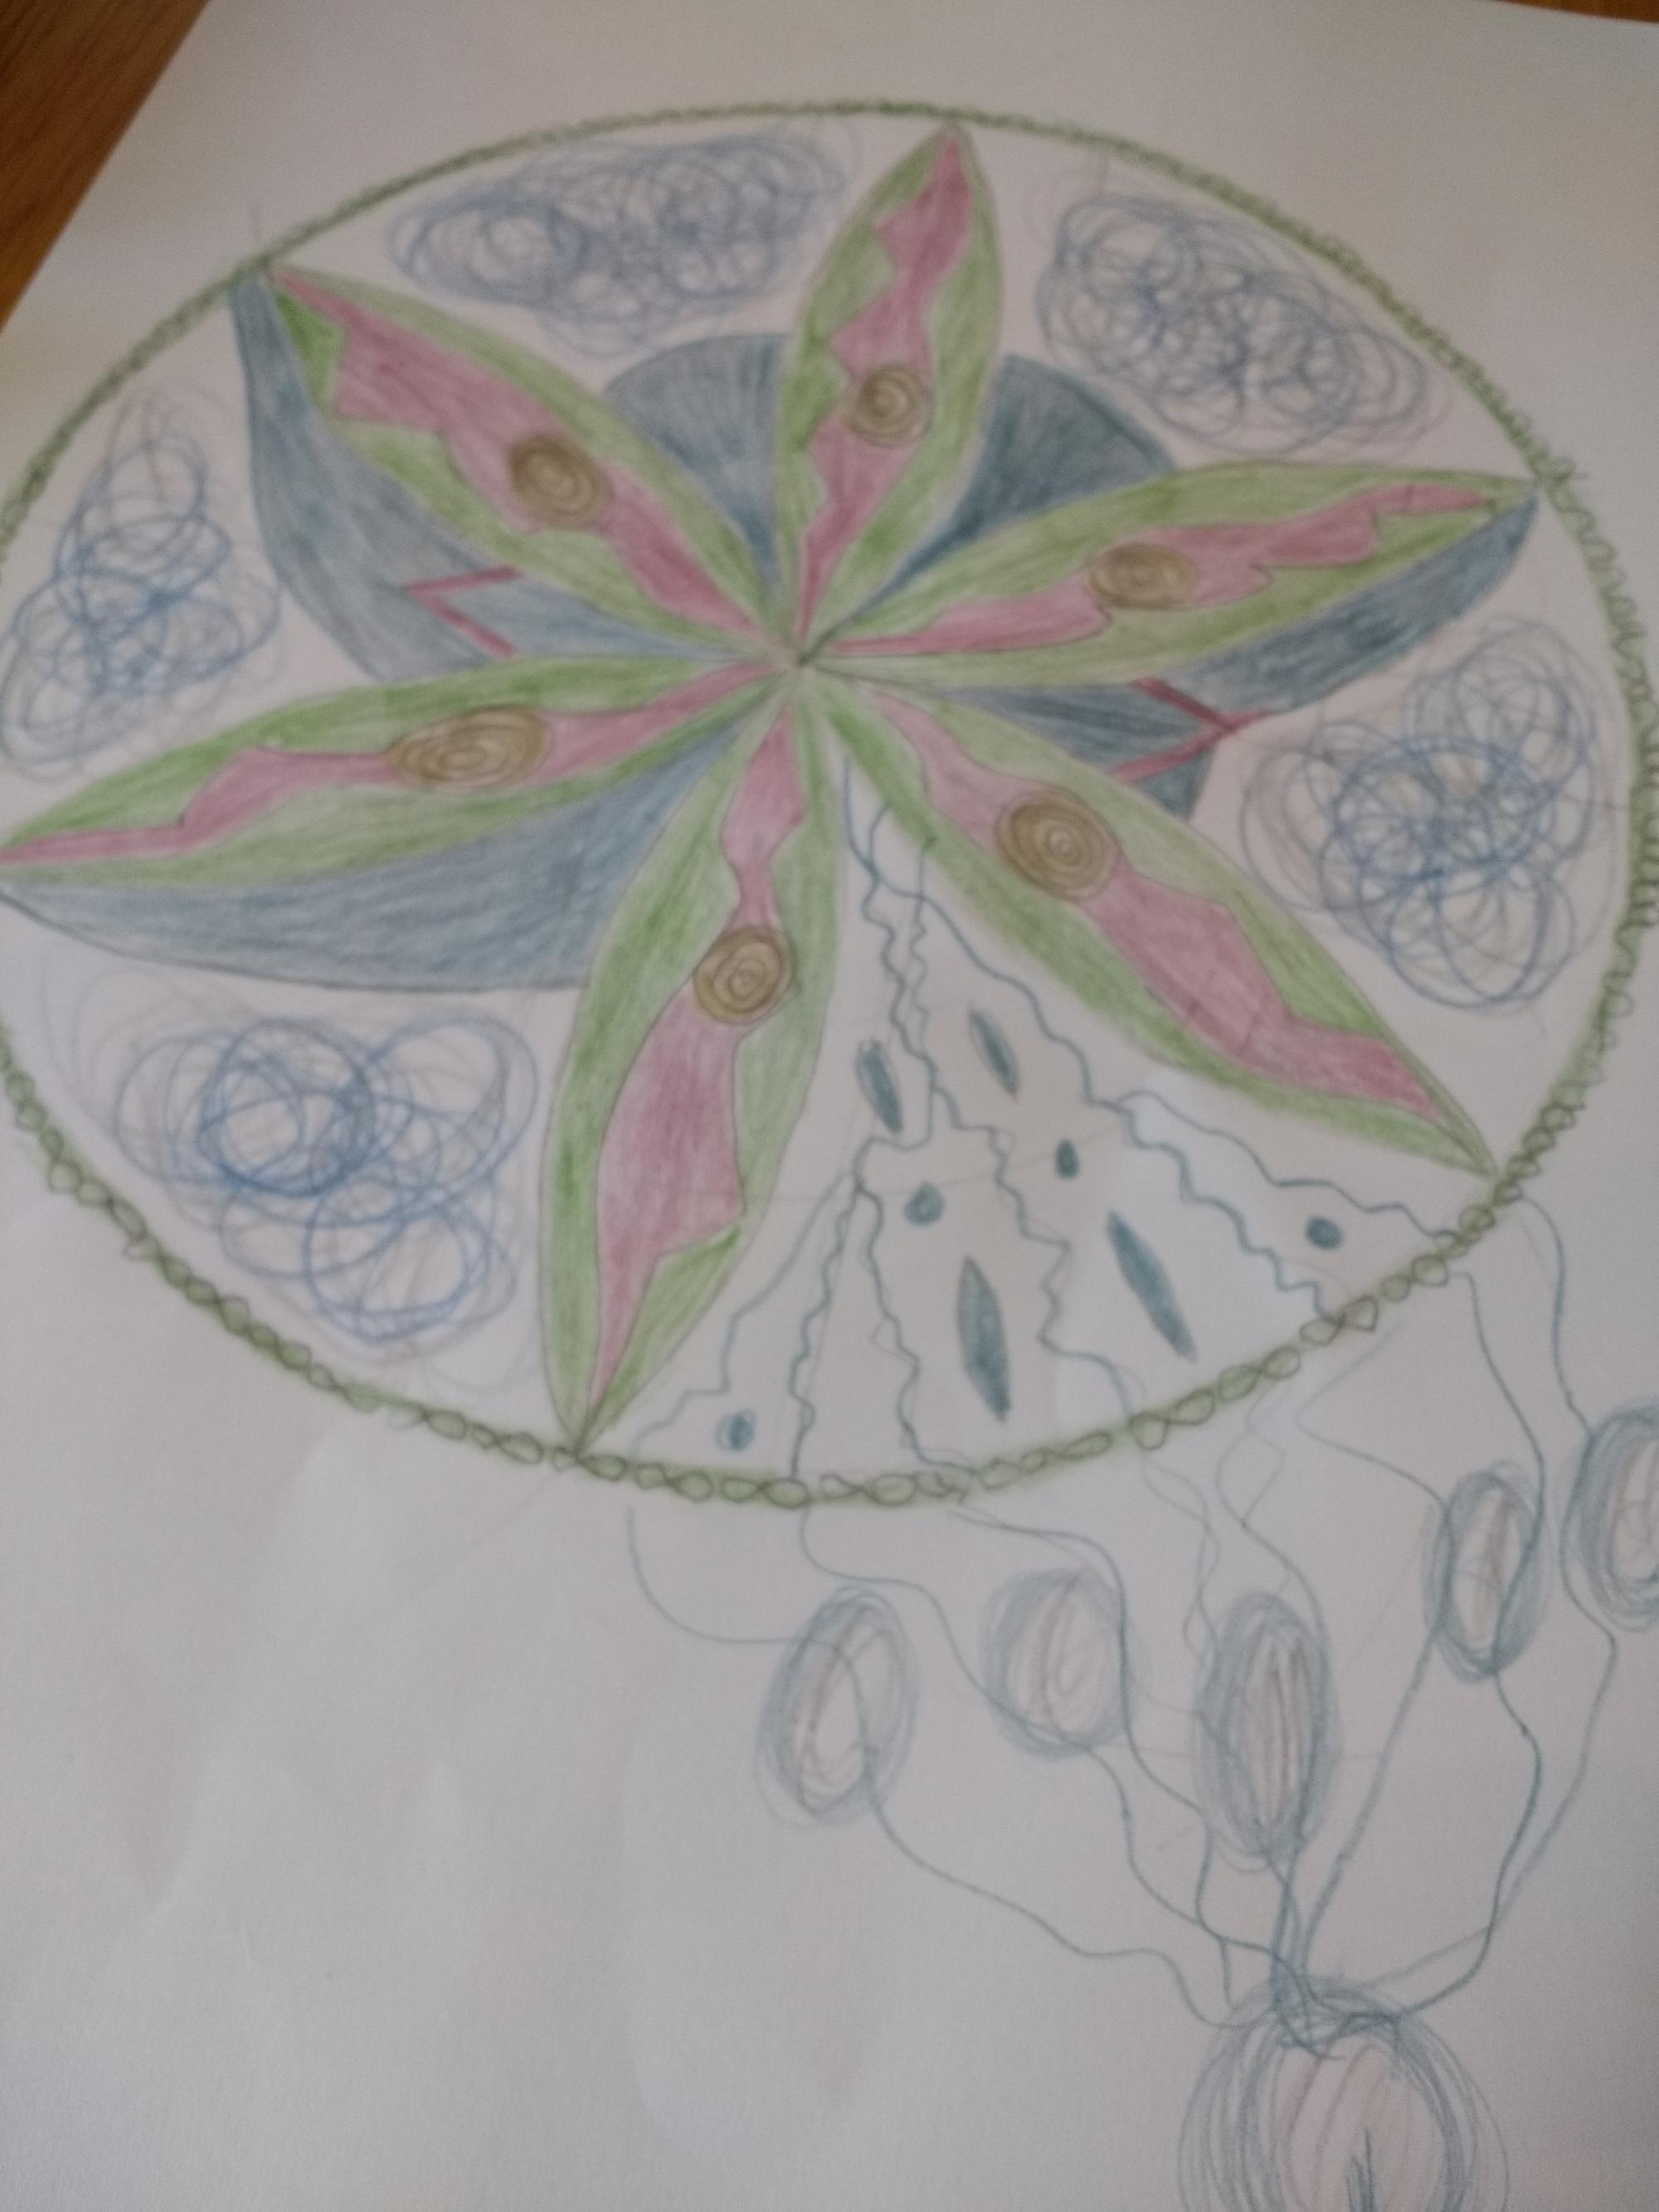 gealle-penhallow-art-within-sessions (4)